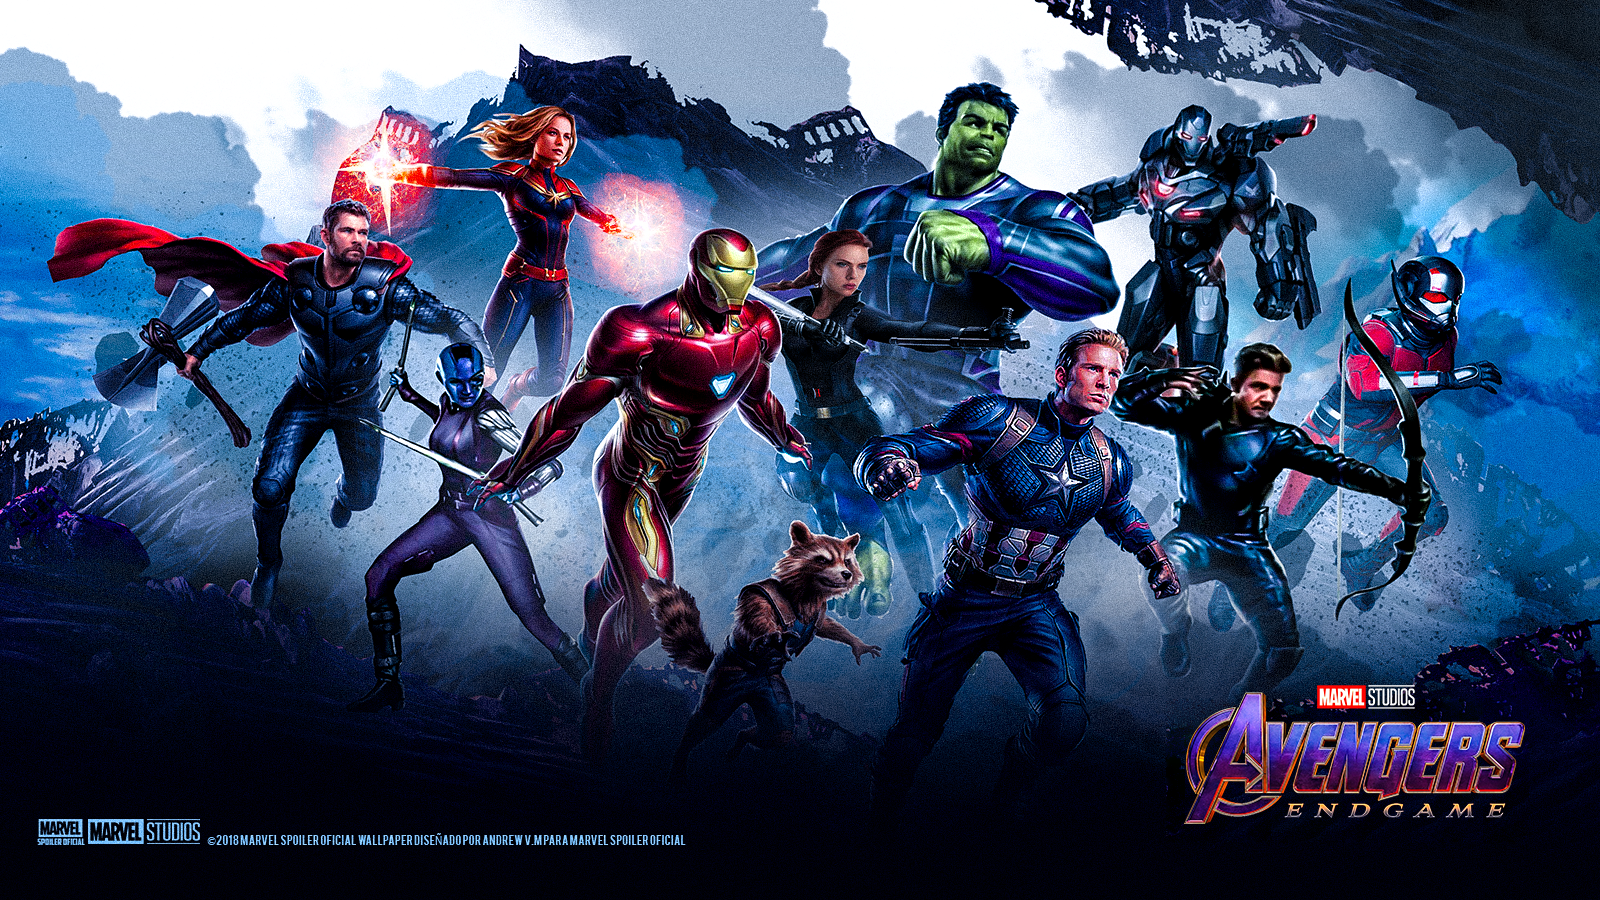 Avengers 4 End Game And Infinity War HD Wallpapers Download In 4K Iron Man, Captain Marvel ...